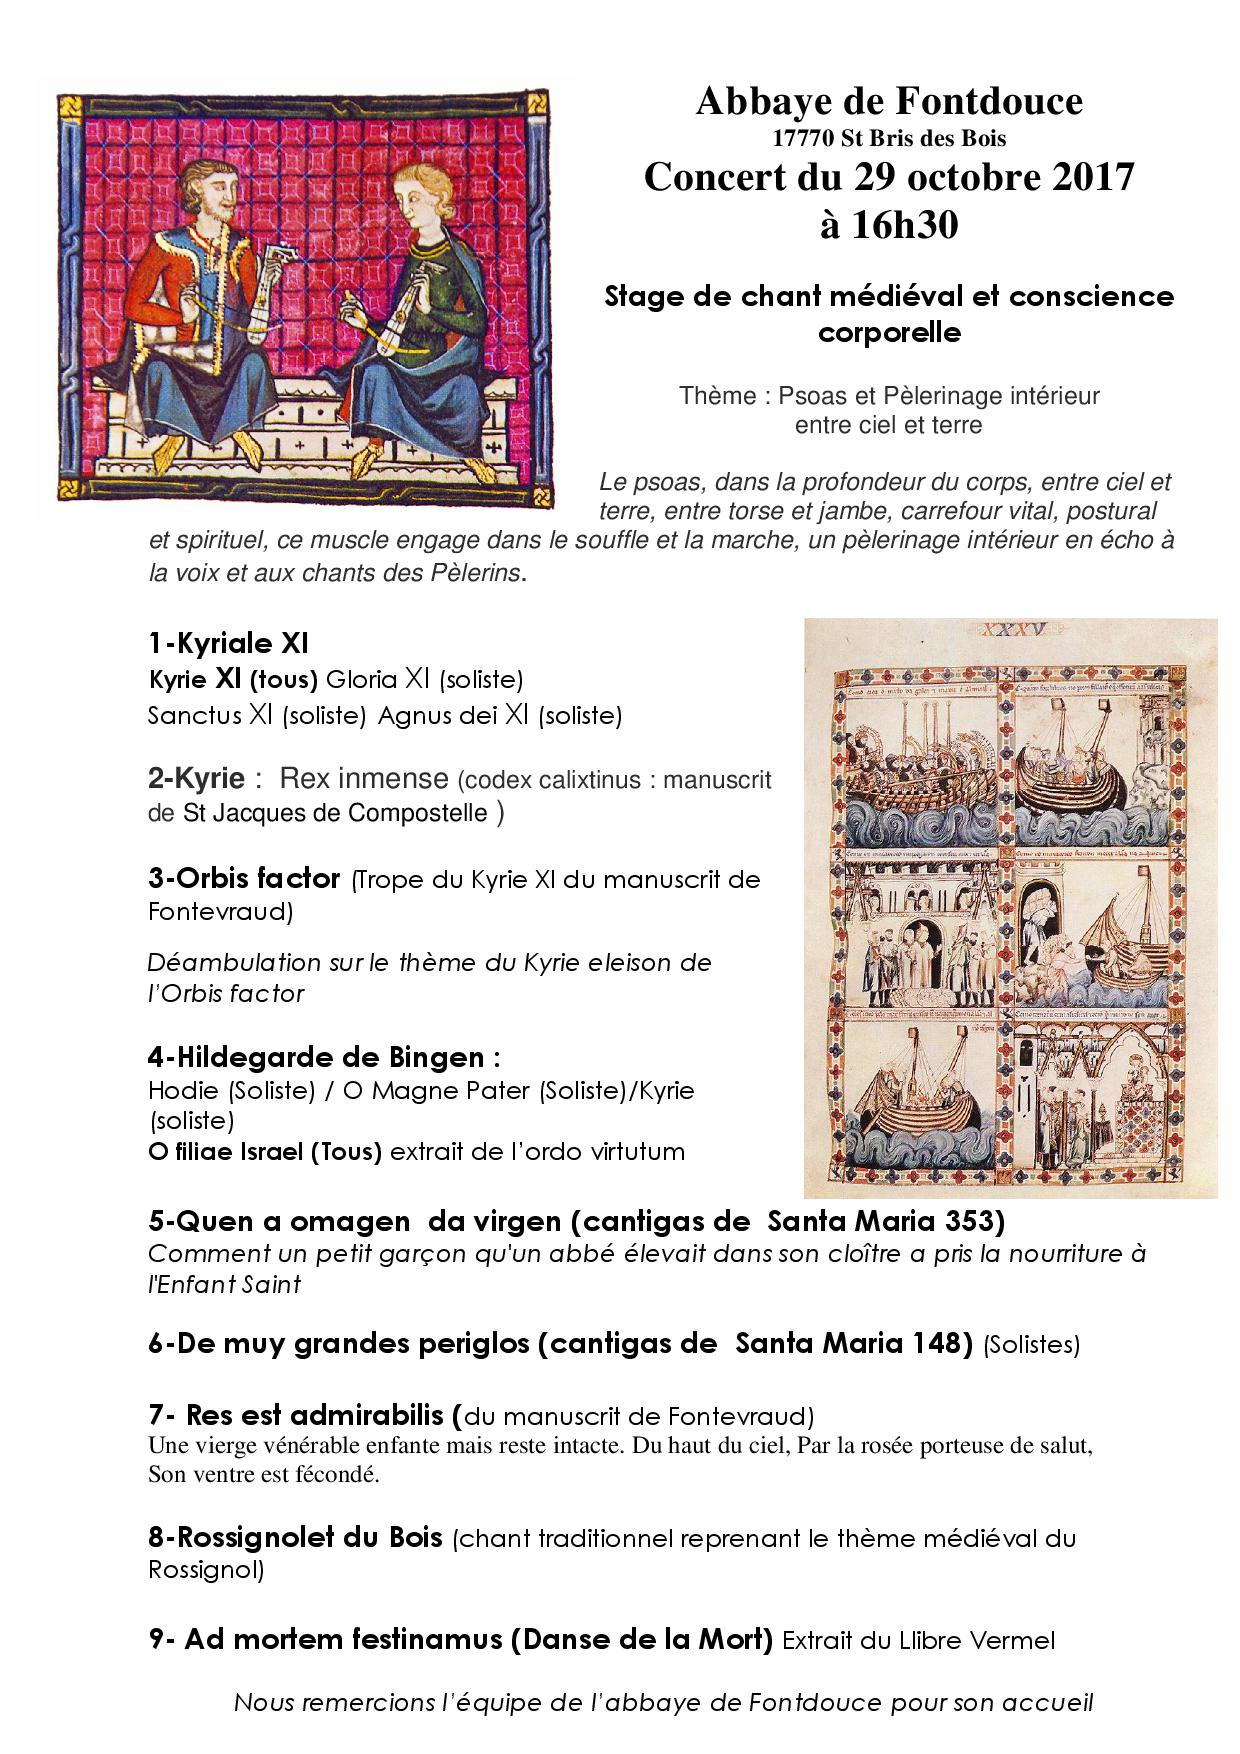 Concert de chant médiéval 2017 à l'Abbaye de Fontdouce